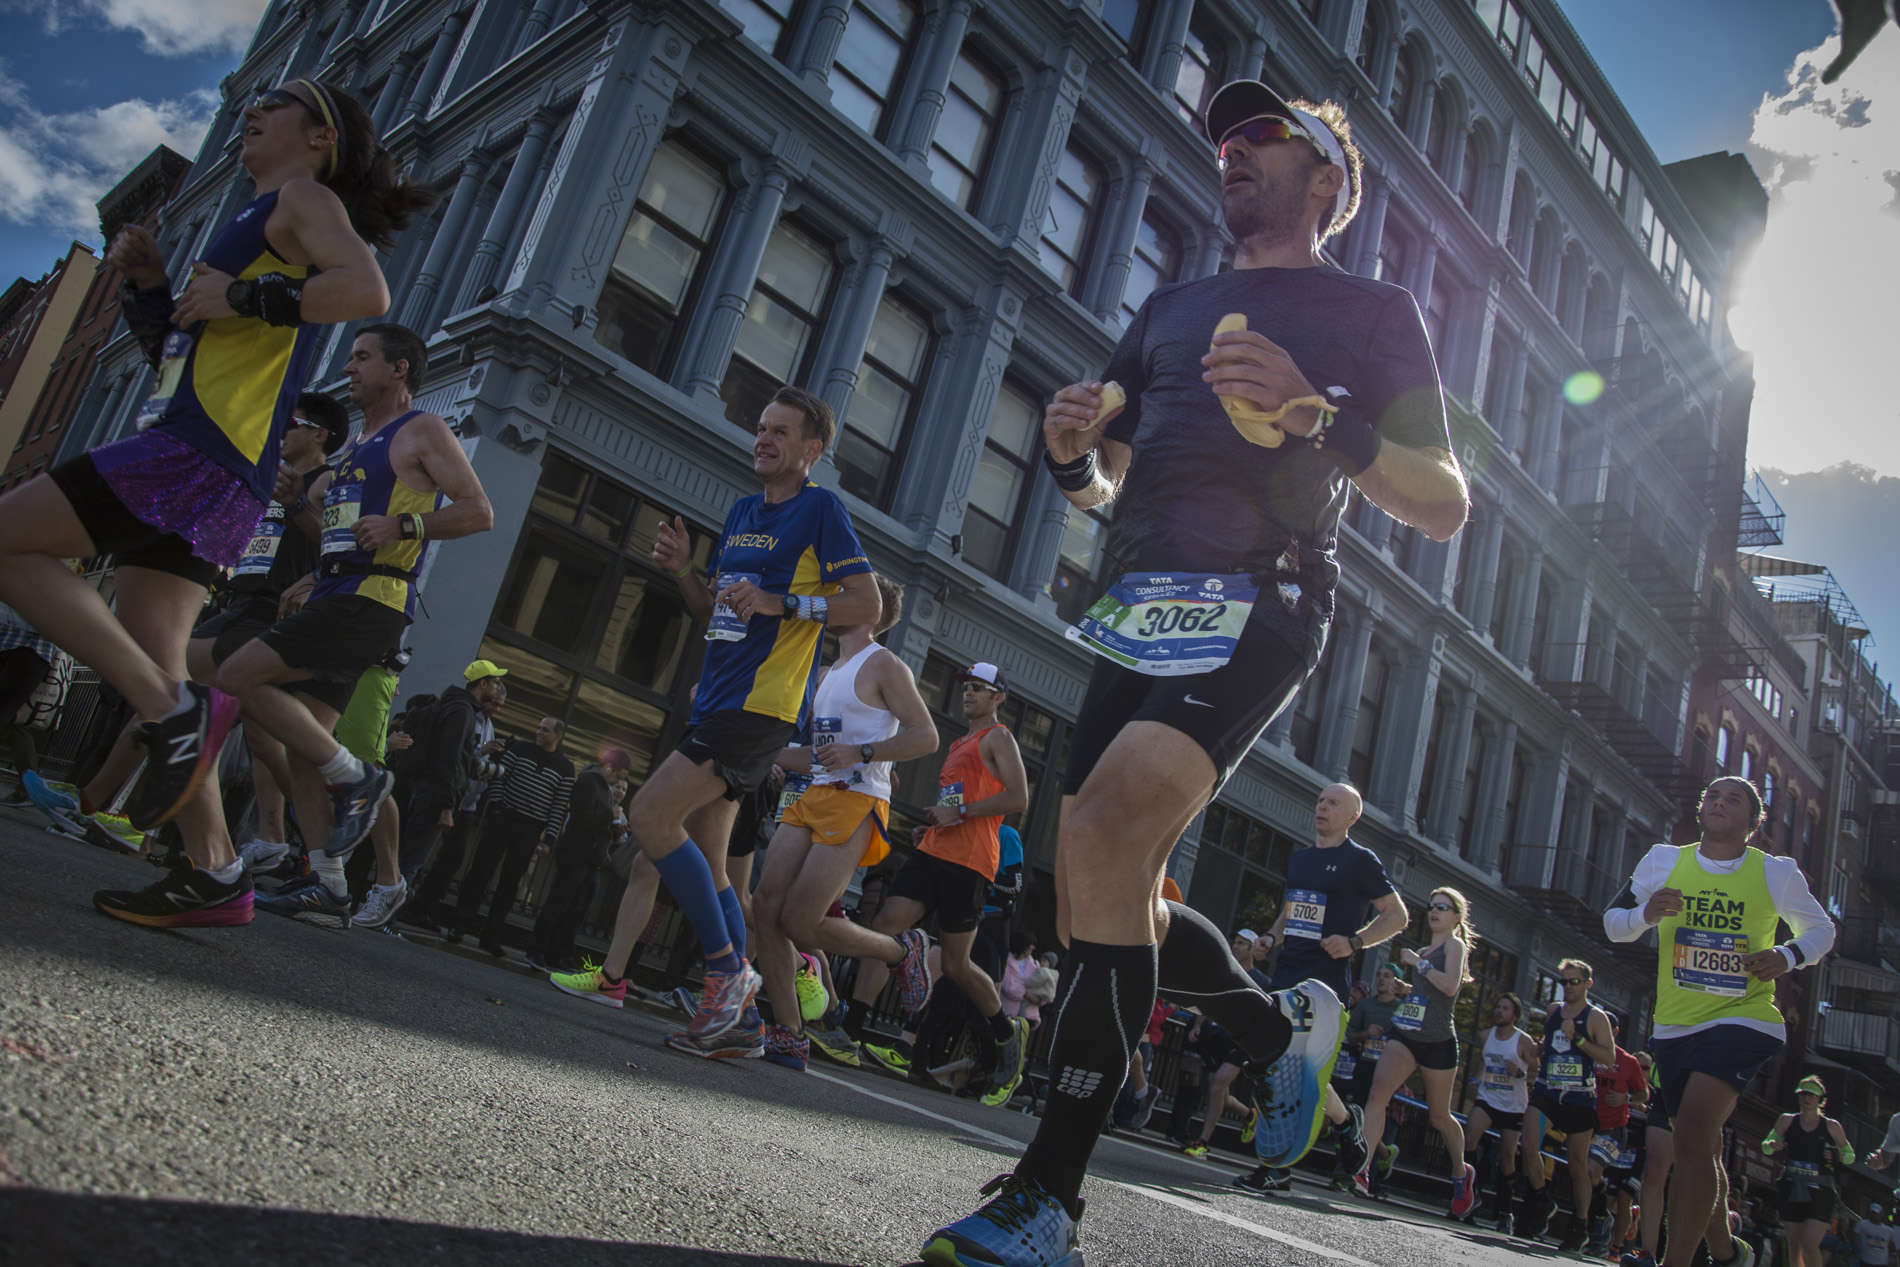 New York marathon 2016. Sarah Scaniglia, photographe-retoucheur professionnel - Nantes Portraits, publicité, corporate, reportage, produits, postproduction, culinaire, industrie, postproduction, formations. Photographe nantes, communication...